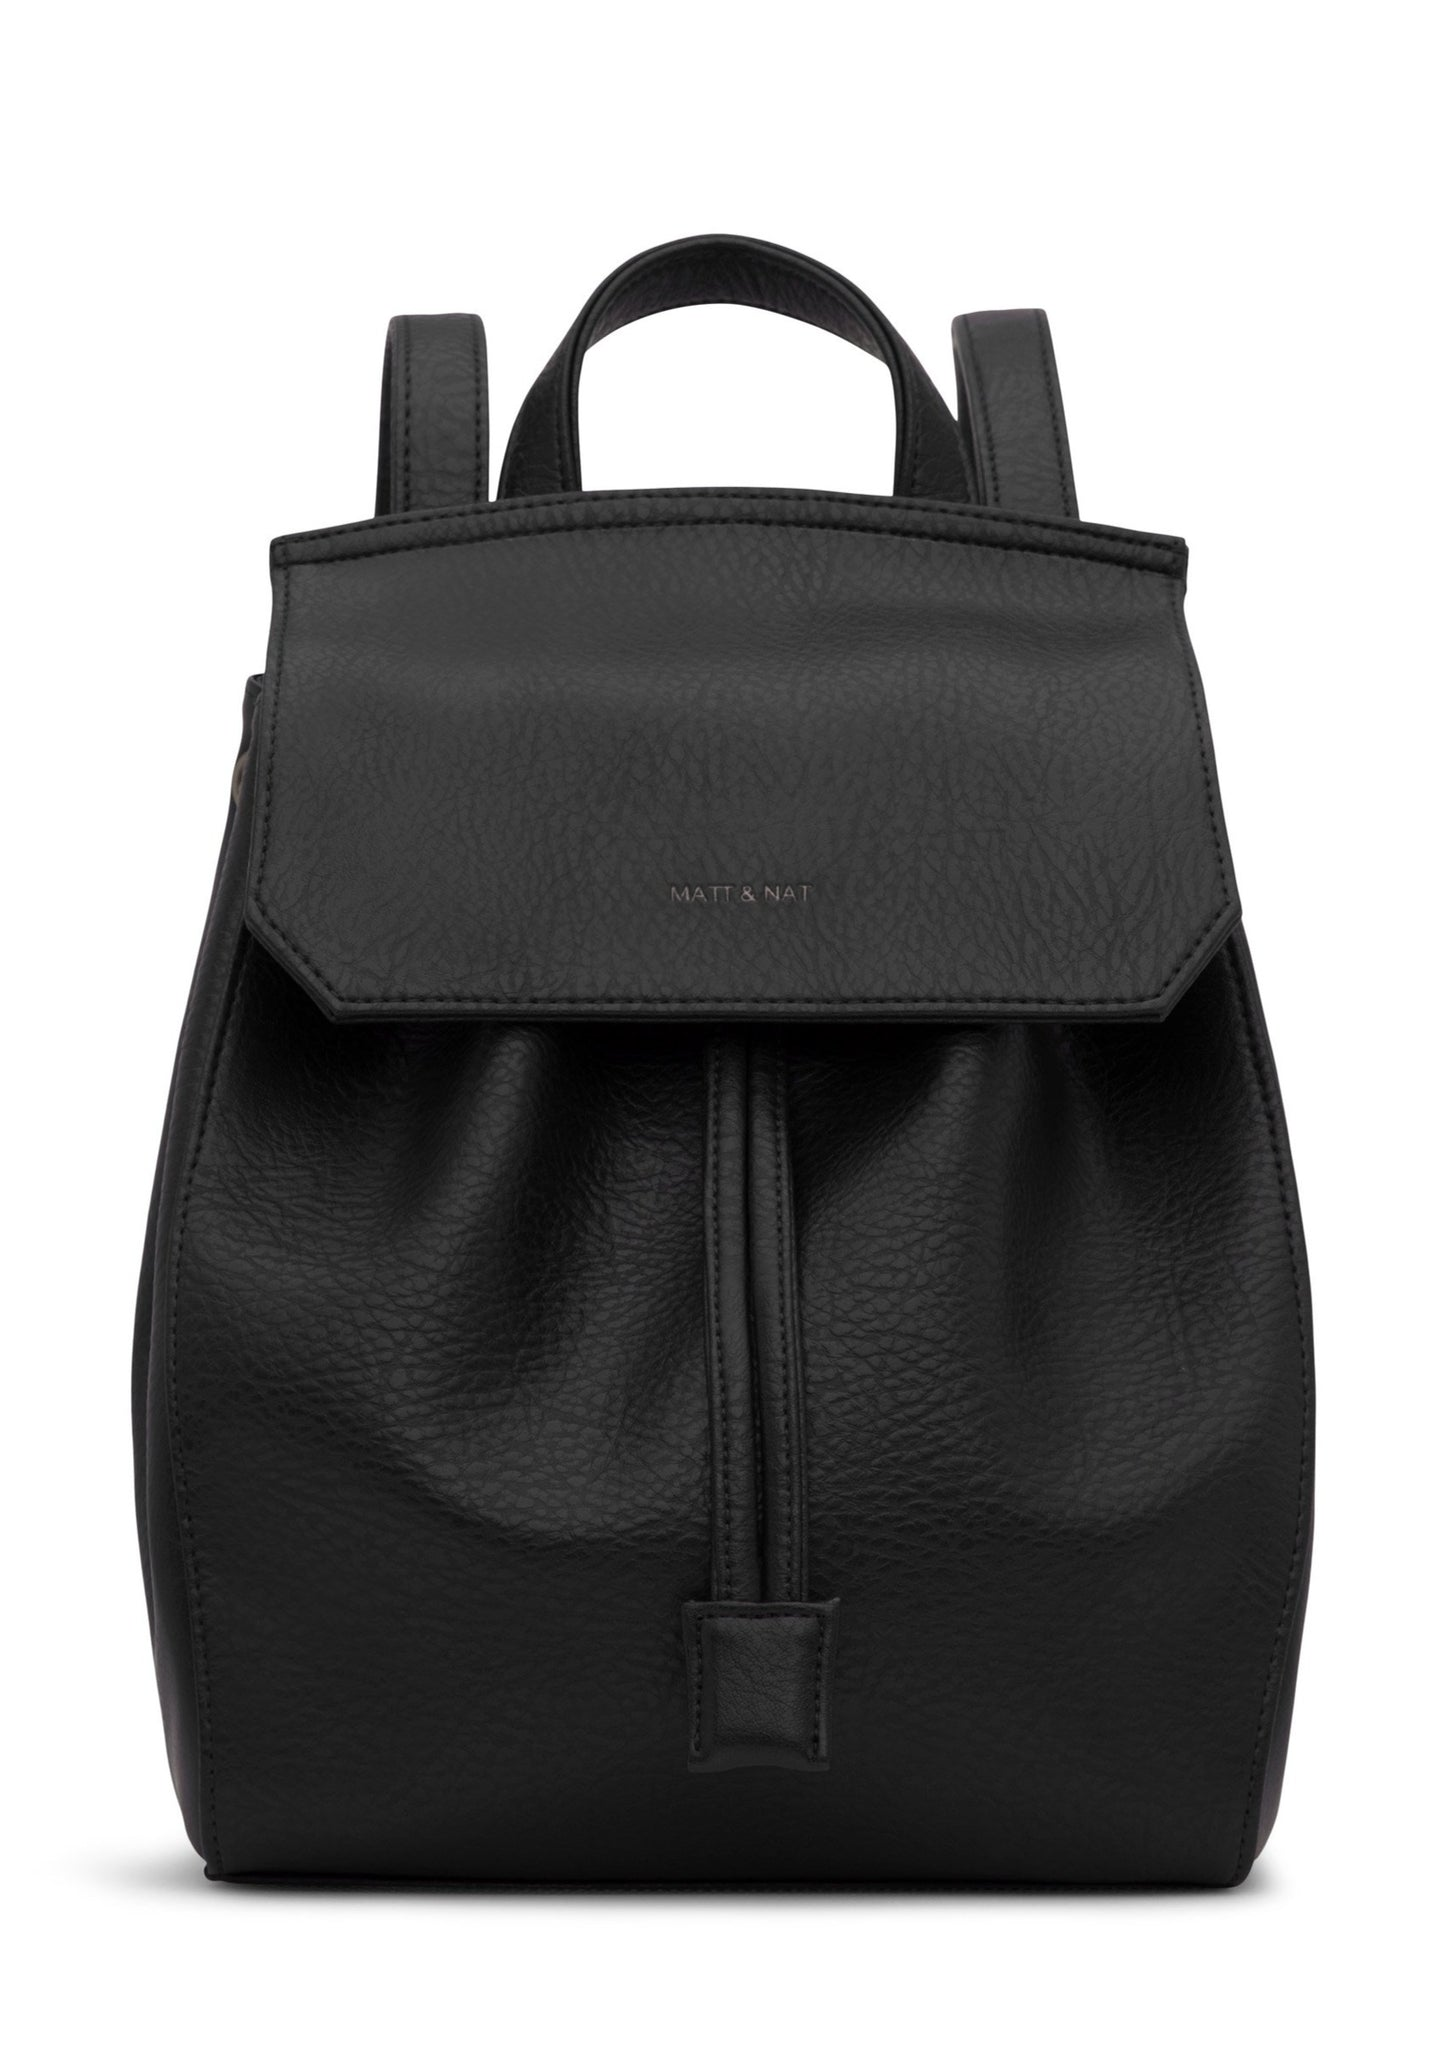 Matt & Nat - Mumbai Dwell Backpack - Black Vegan Leather